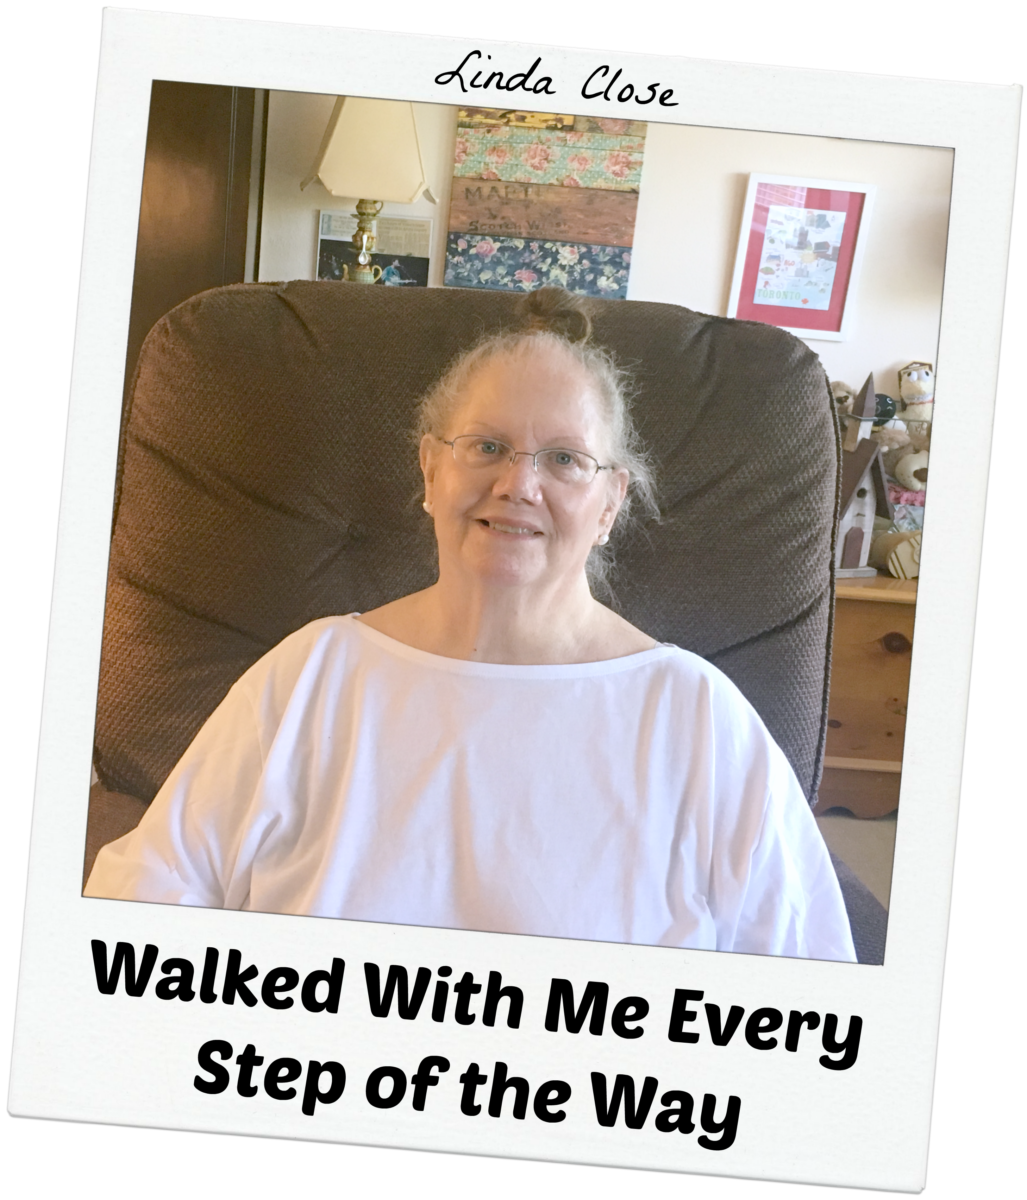 Linda Close - Walked With Me Every Step of the Way